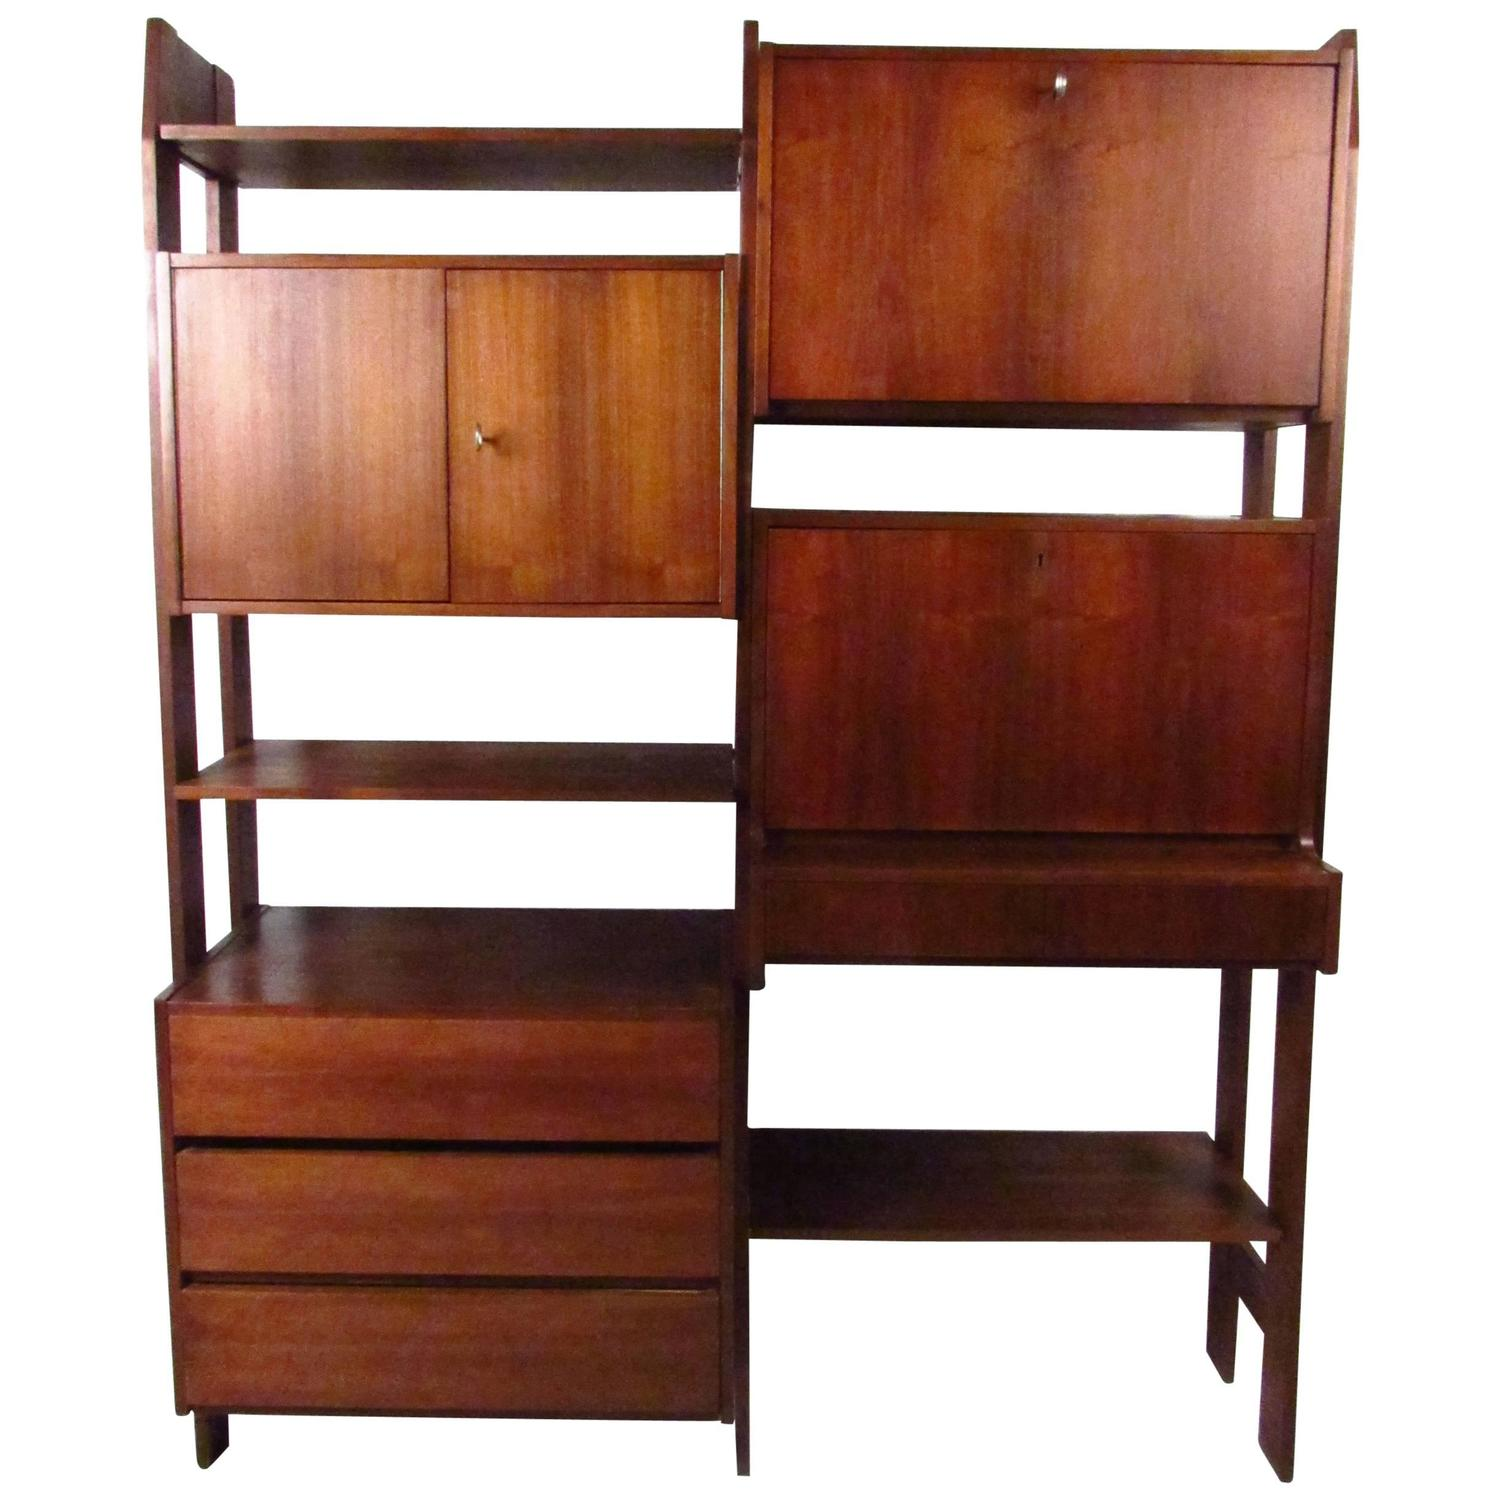 Midcentury Wall Unit With Drop Down Writing Desk For Sale: wall unit furniture